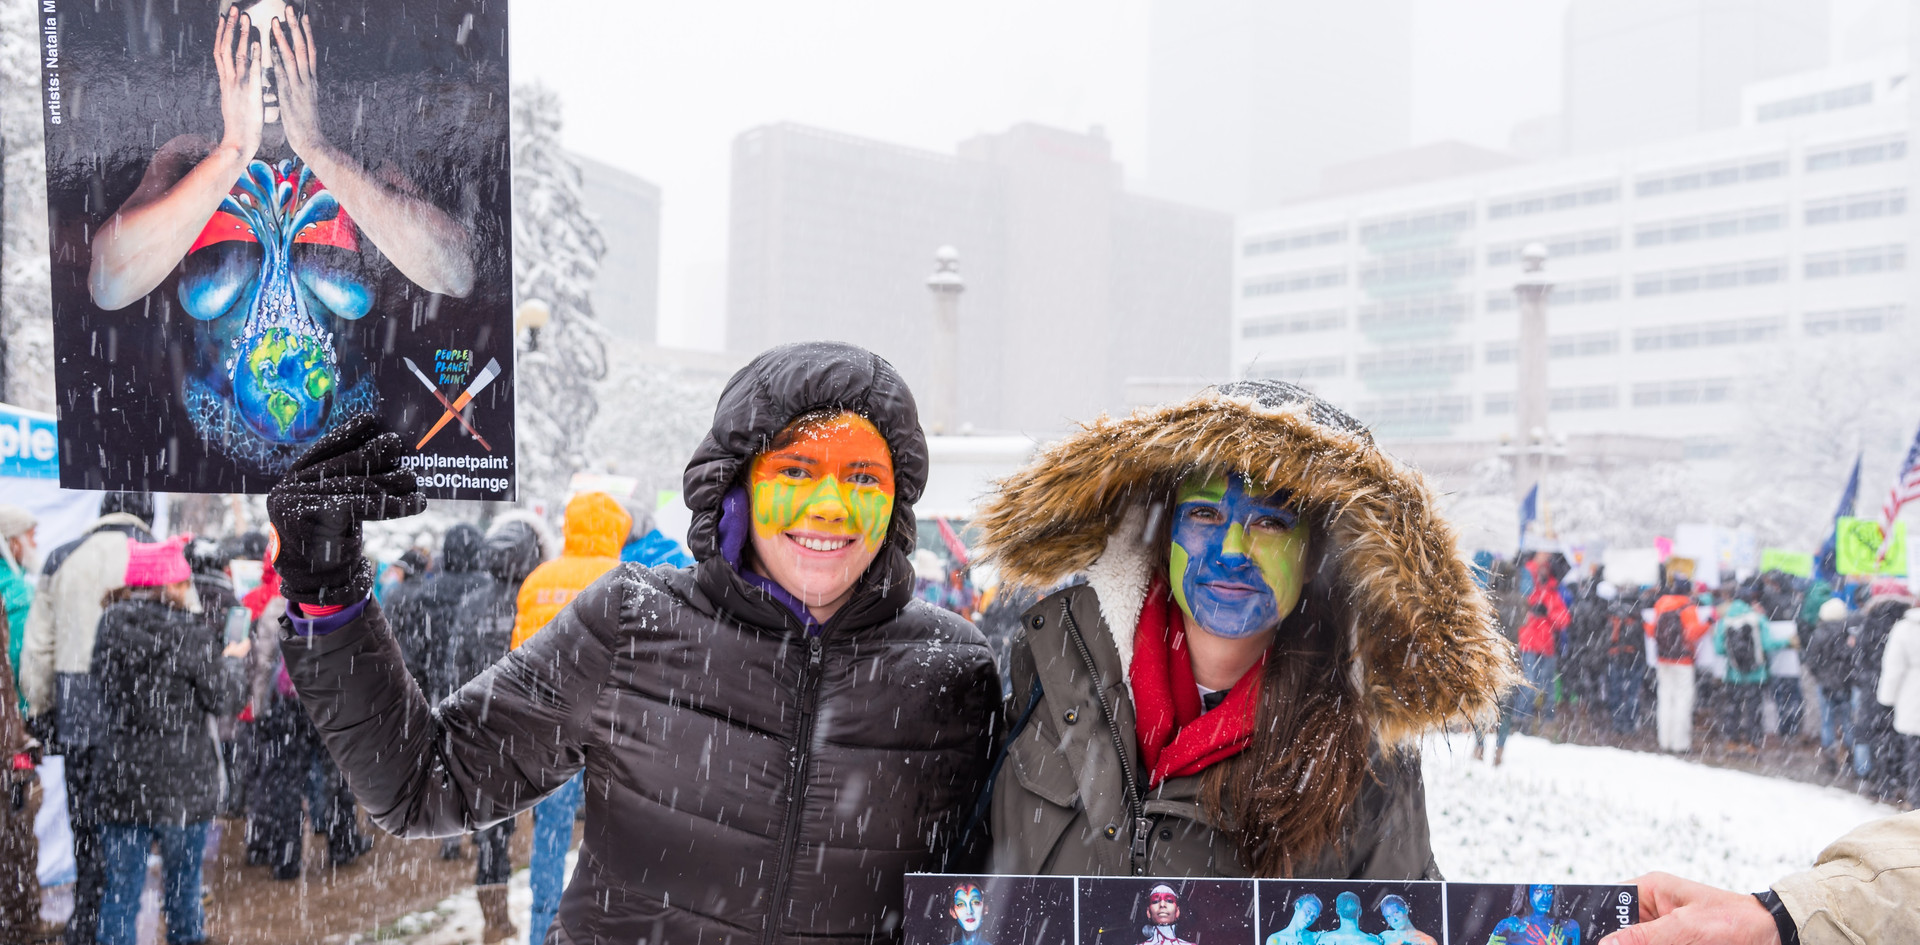 Painted People's Climate March